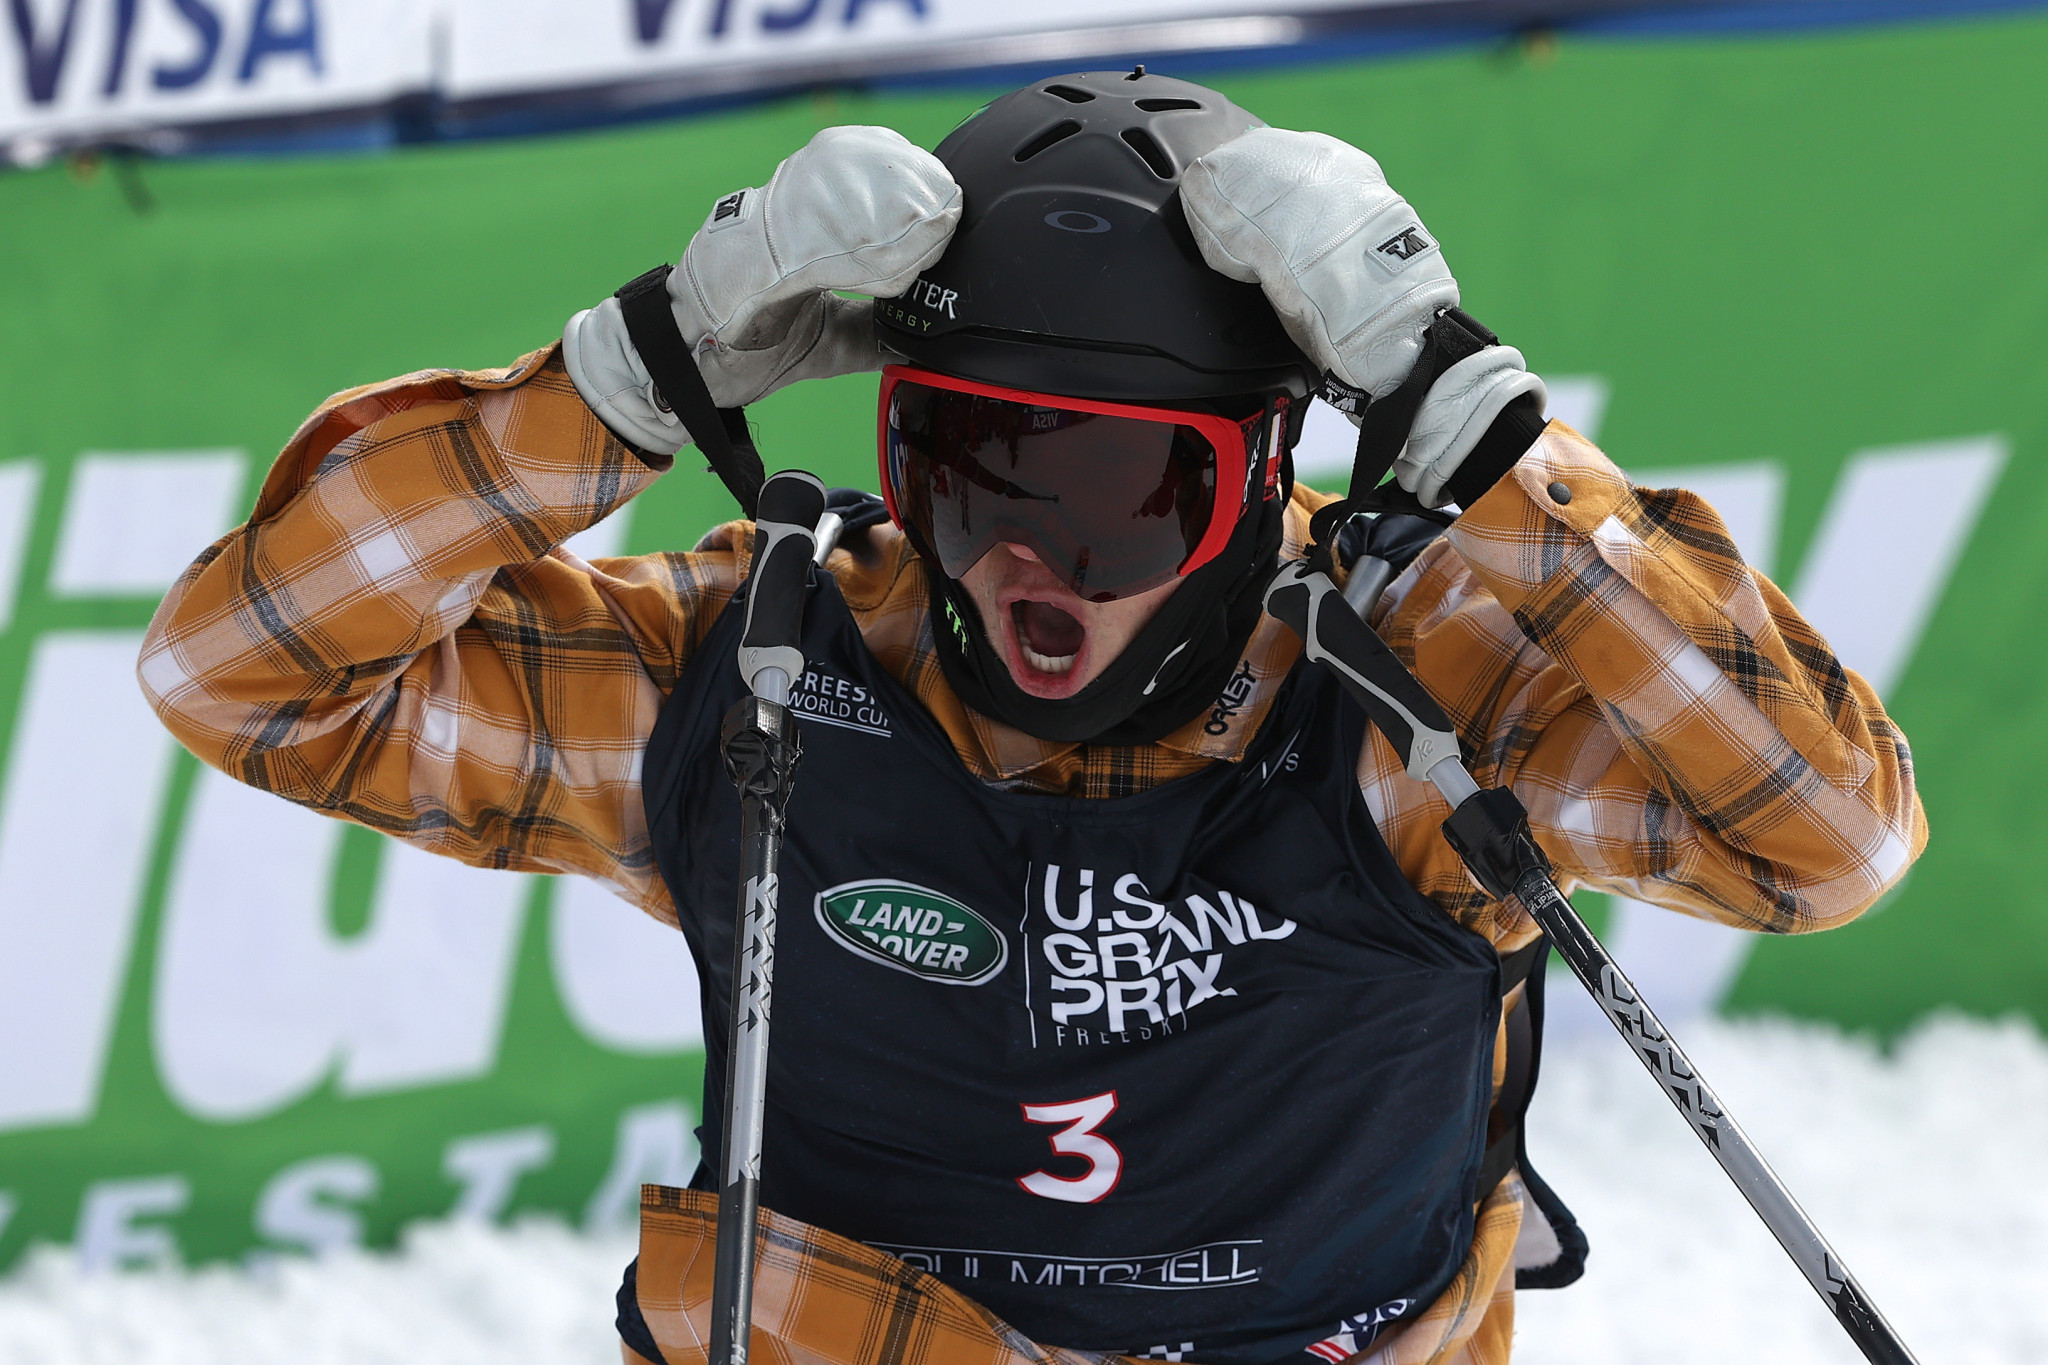 Ledeux and Stevenson head into slopestyle World Cup finale in prime position